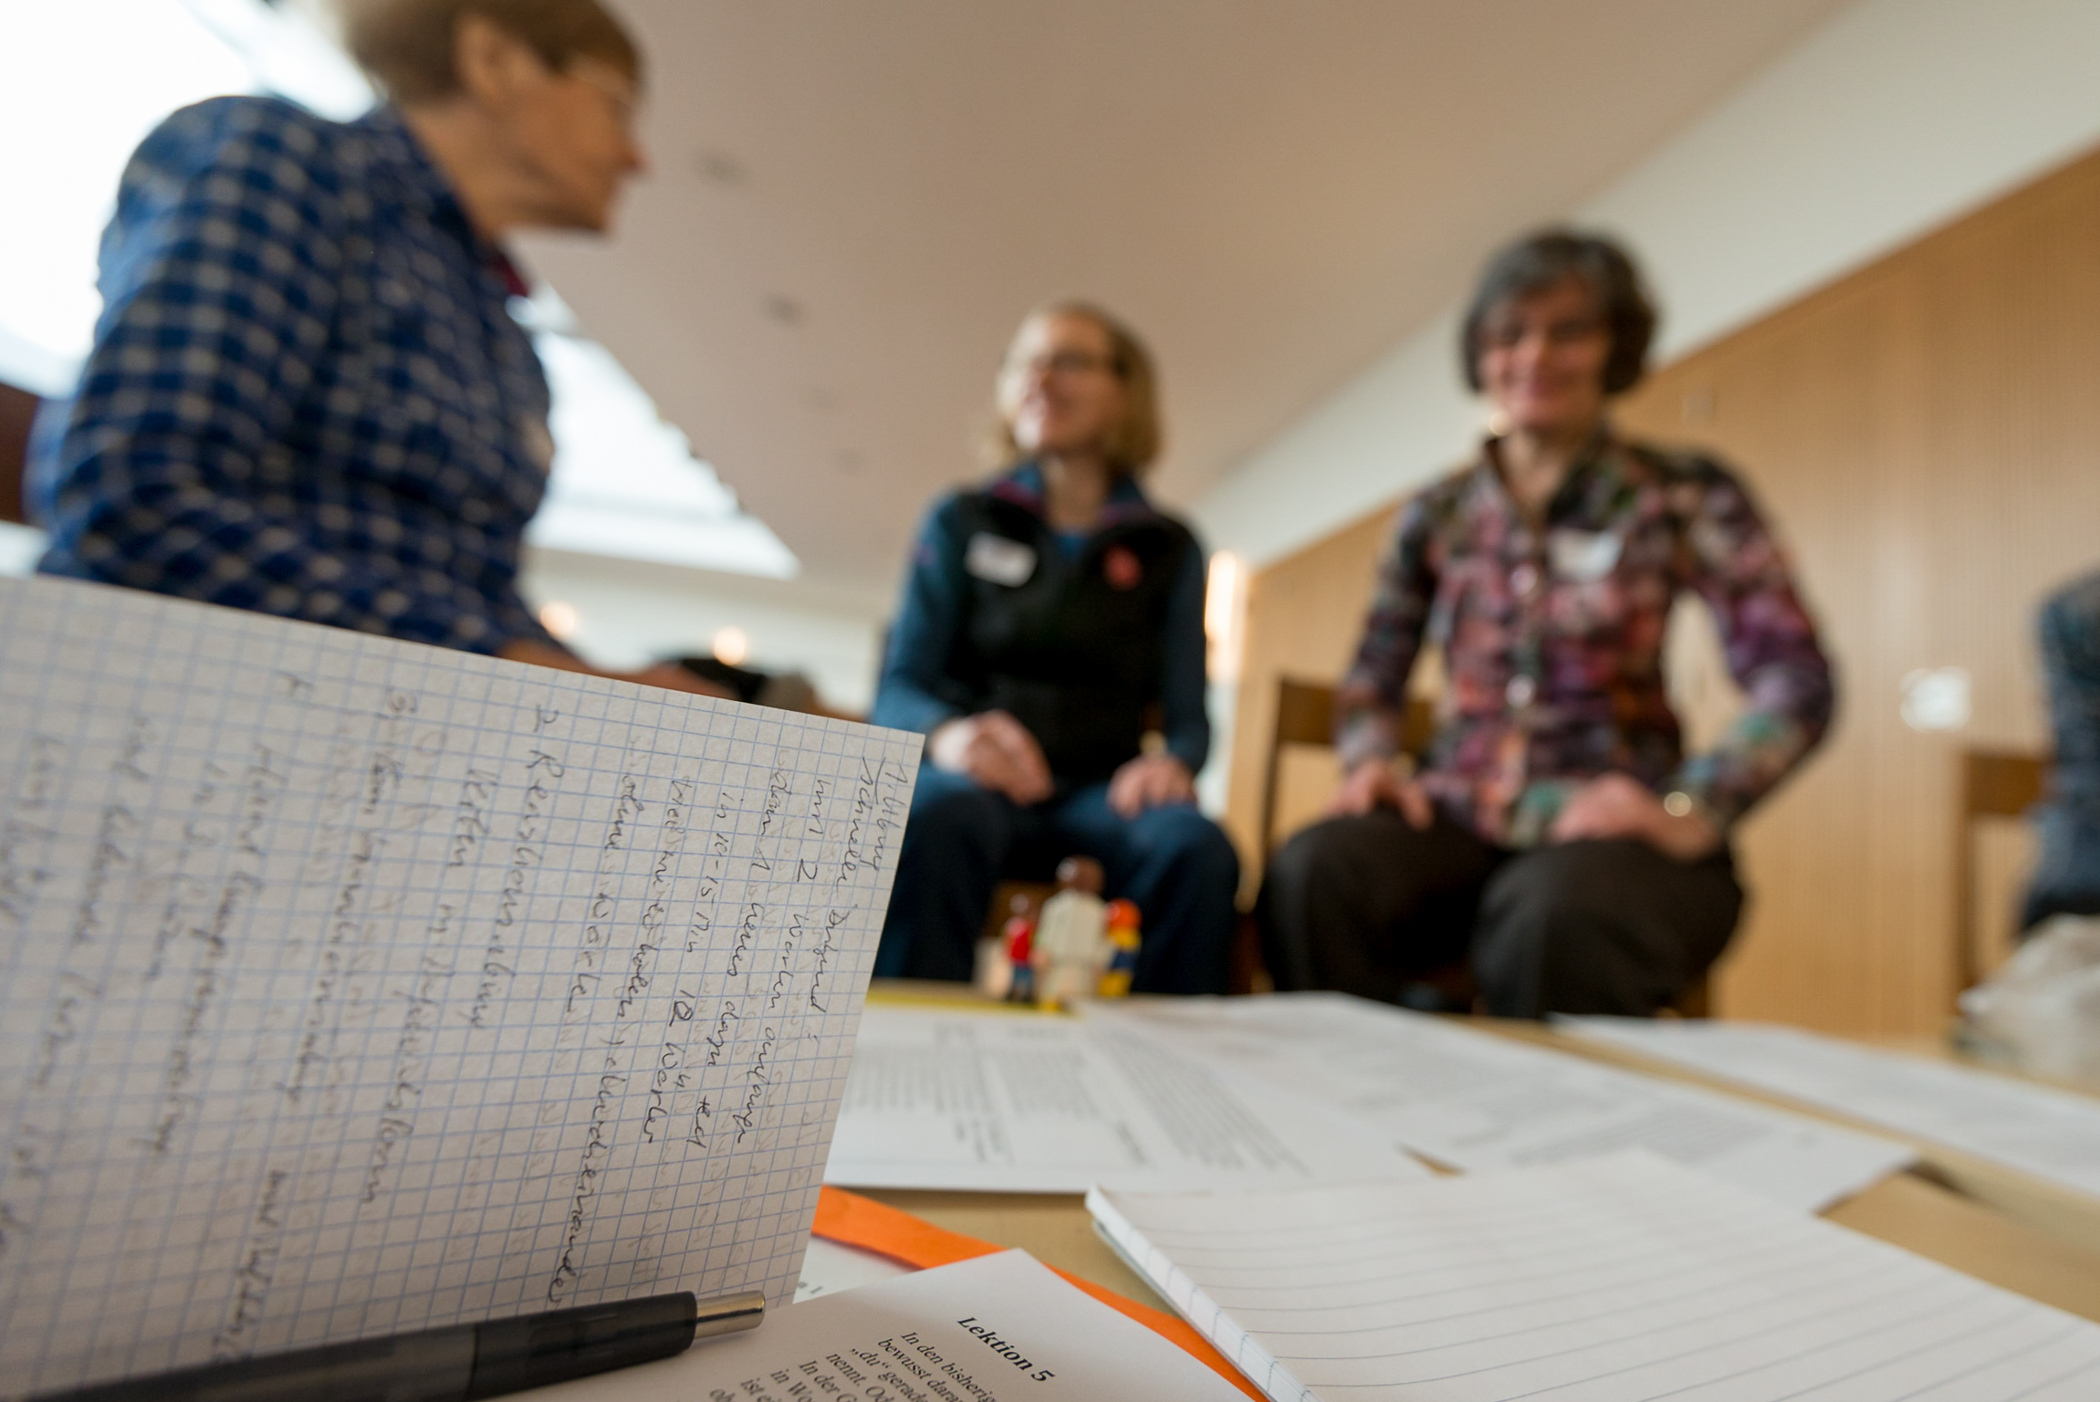 Participants' notes and pre-printed course materials rest on a table as they develop a sample language-learning exercise during the German for Refugees course offered at Gellertkirche, in Basel, Switzerland. The German for Refugees course is a train-the-trainer course designed to equip Swiss to teach their language to recently arriving refugees.